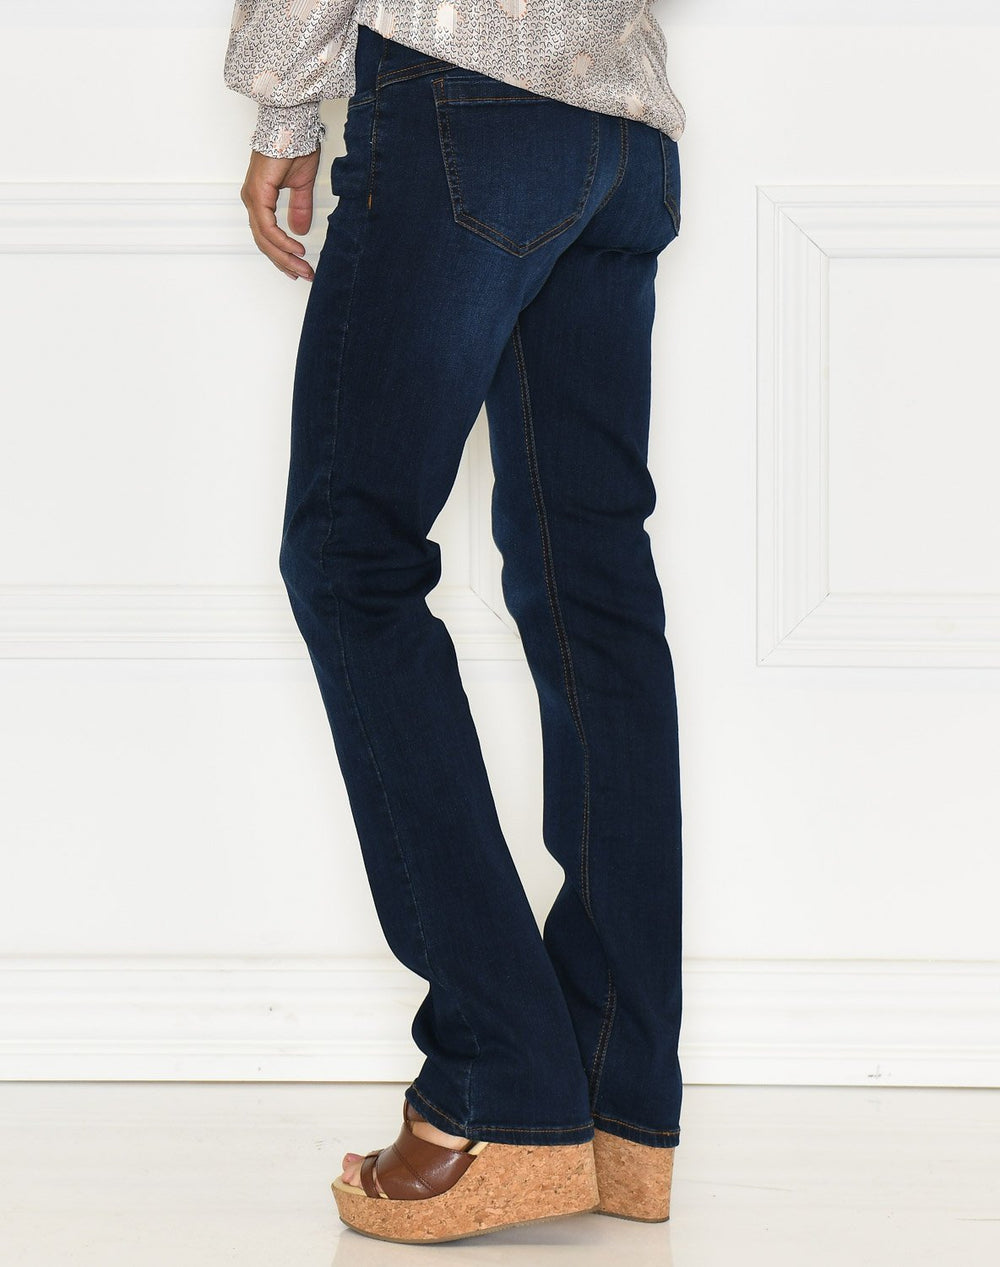 Fransa Zomal 2 jeans denim indigo blue denim - Online-Mode